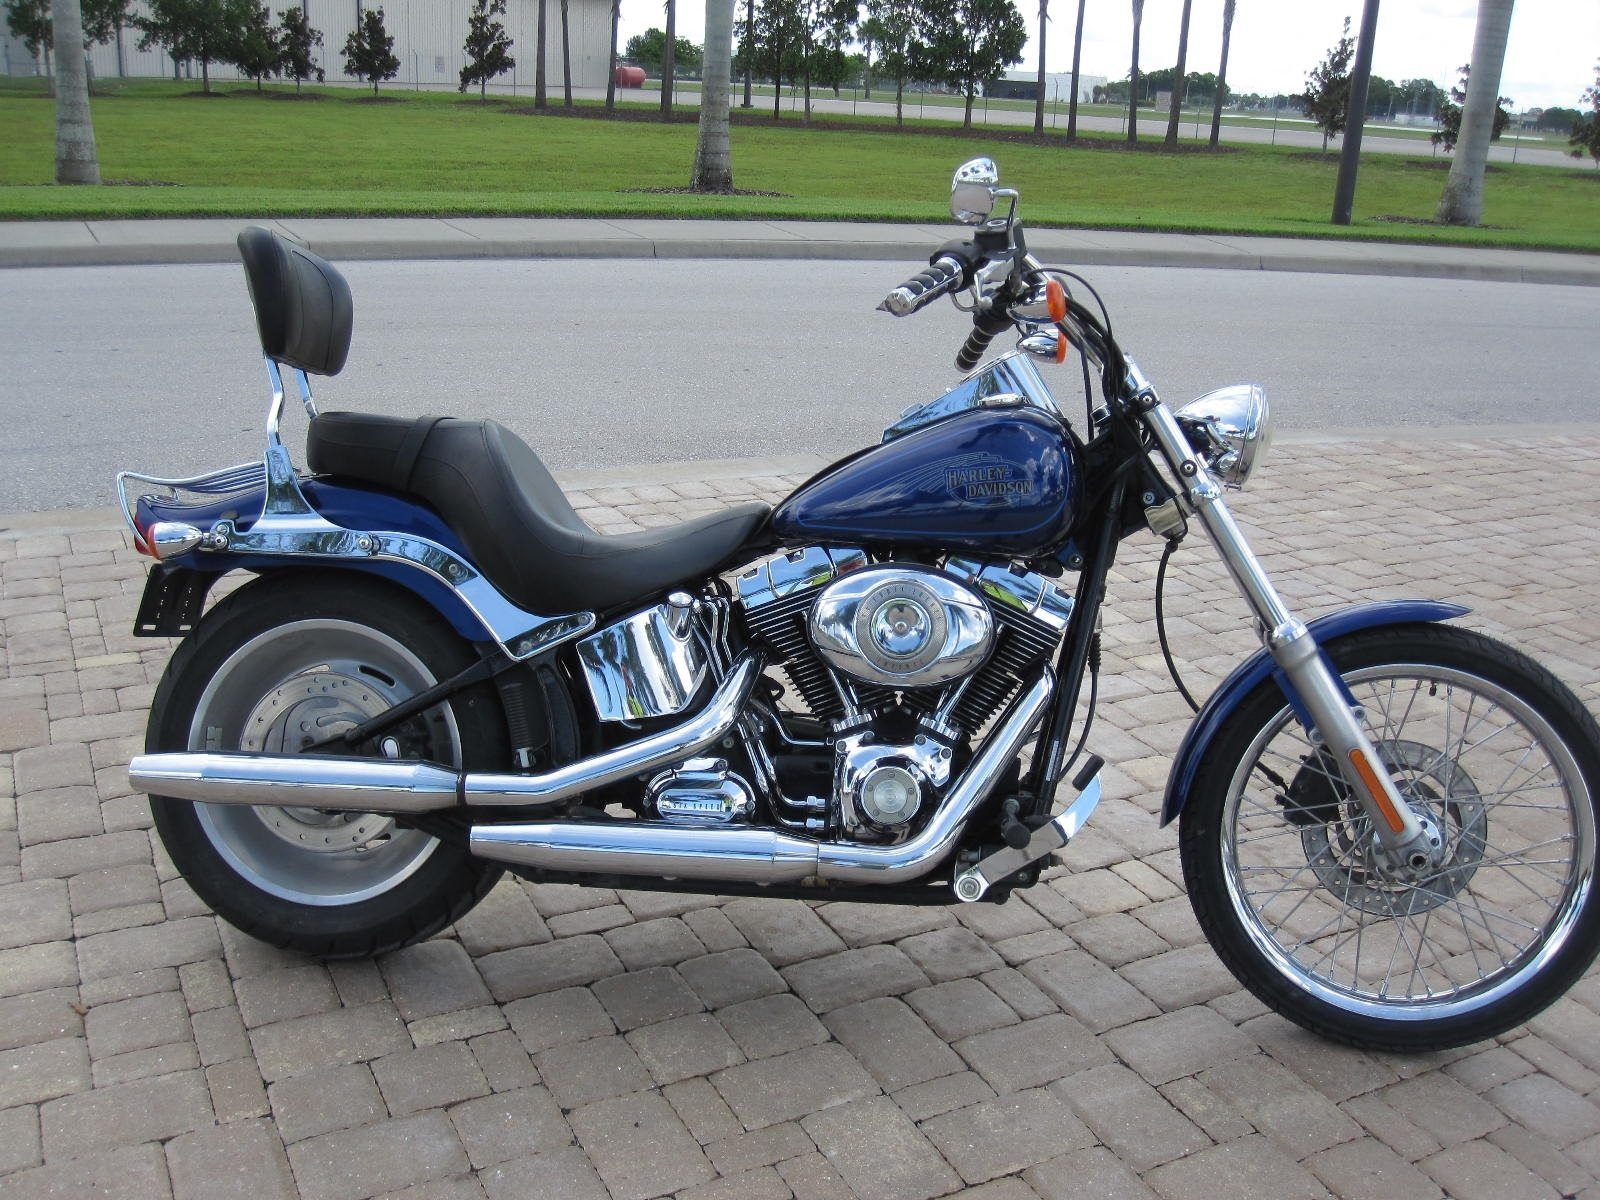 Used 2007 harley davidson softail custom motorcycles in for Harley davidson motor credit